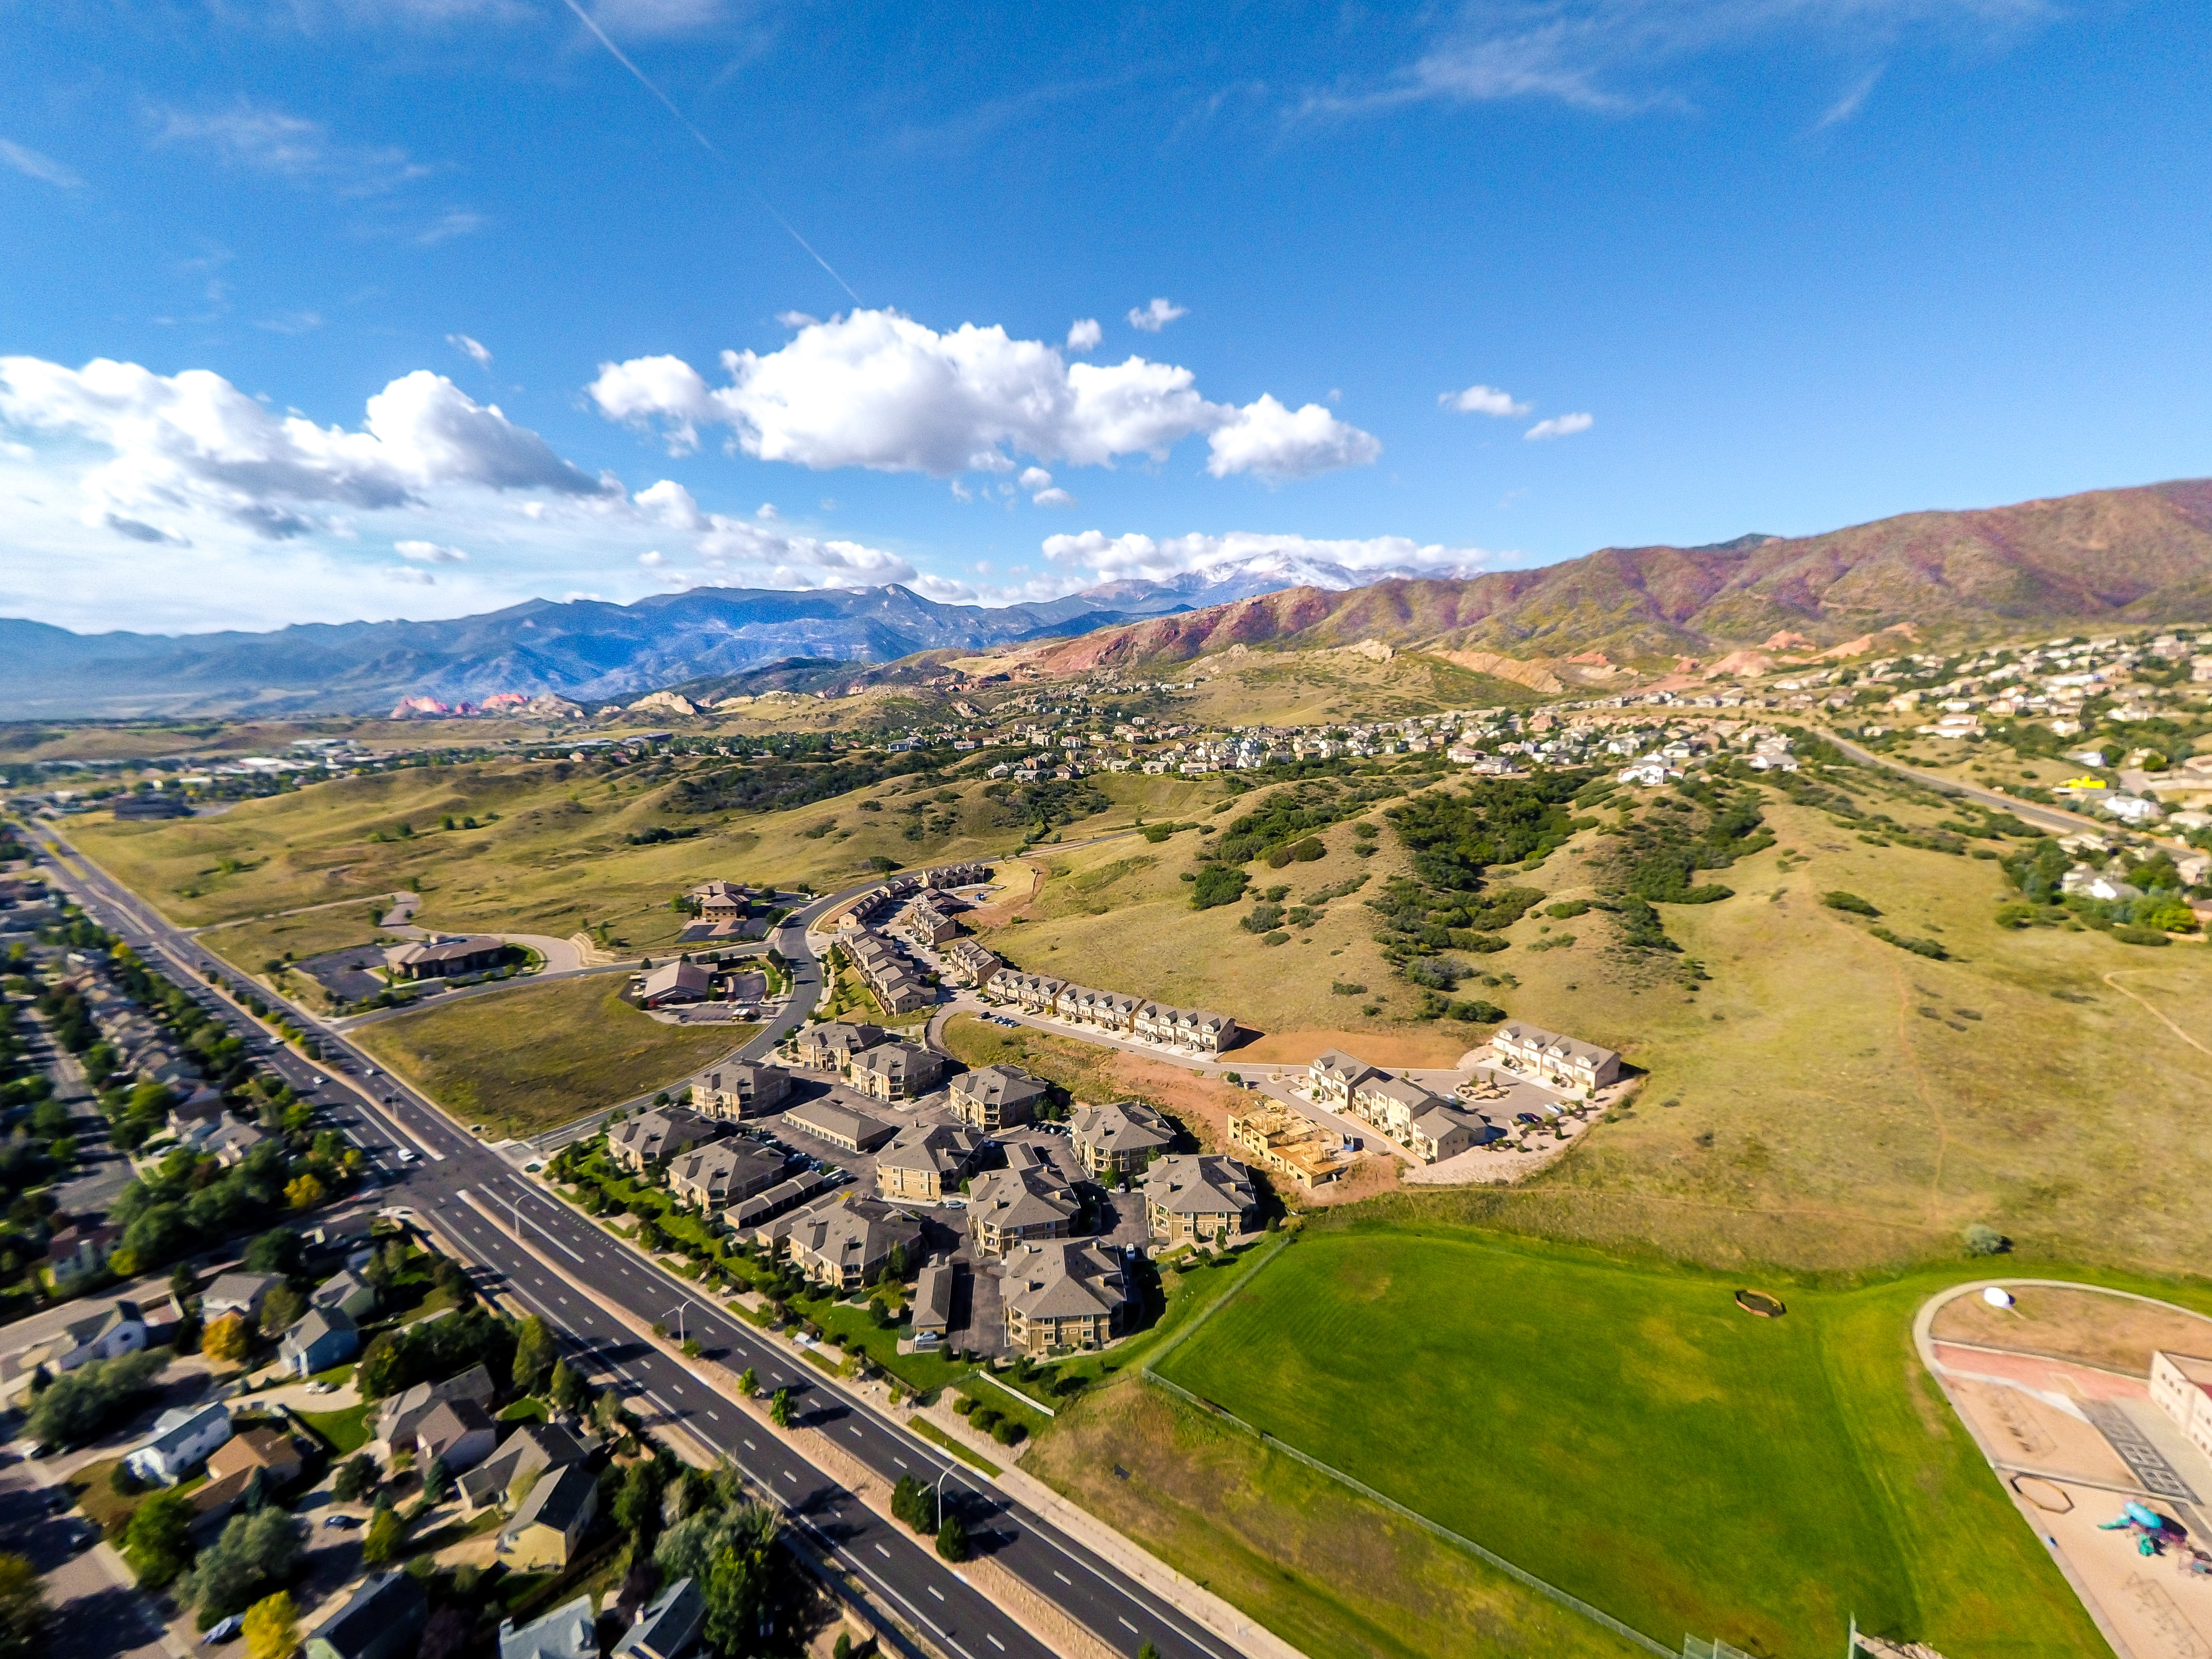 aerial photography of houses near mountain